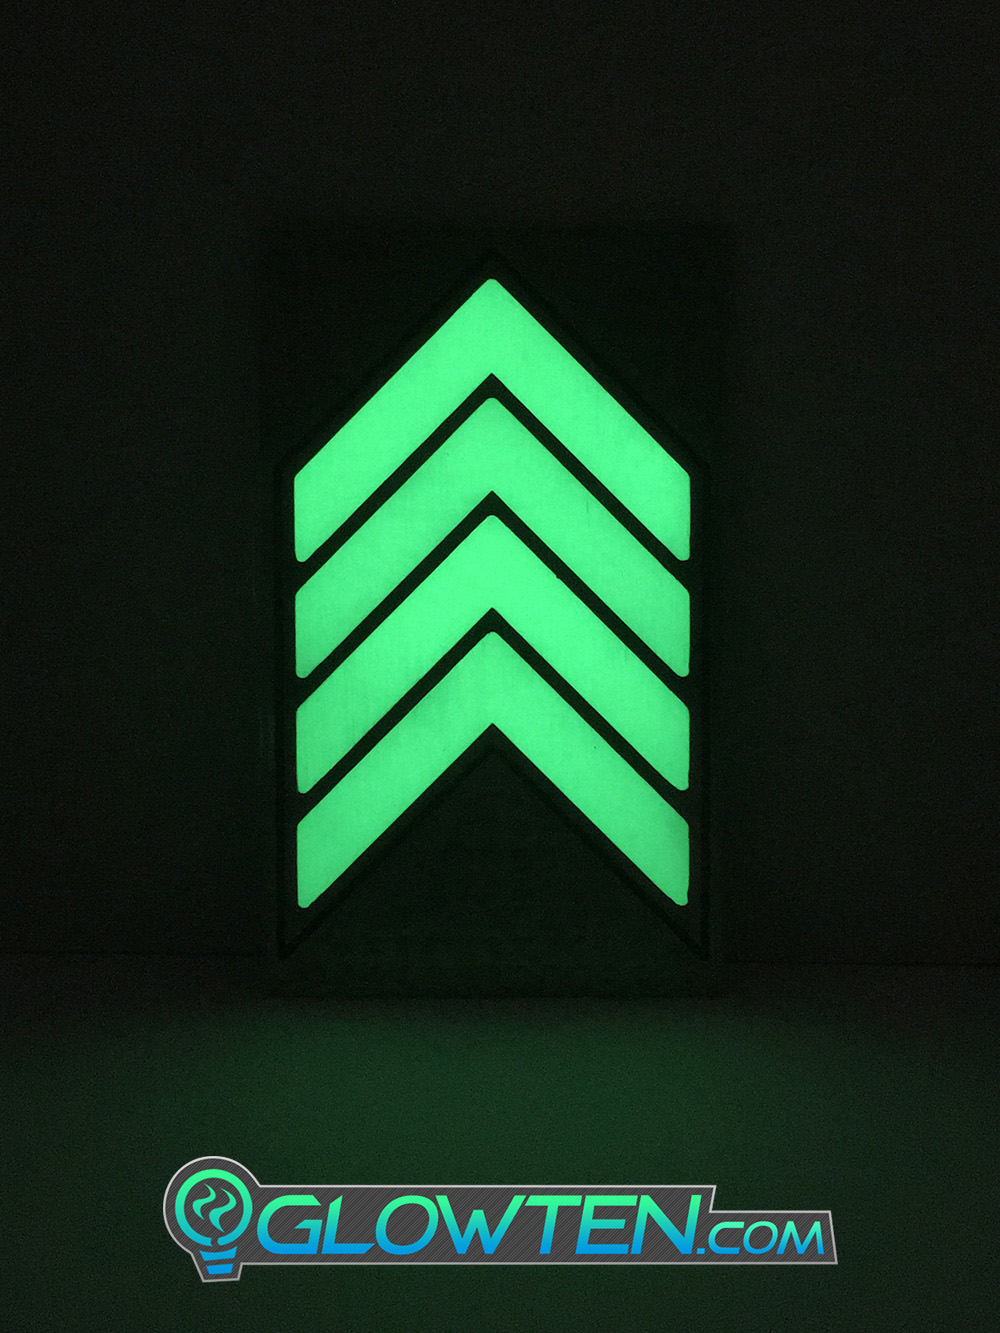 GLOWTEN.com - FOUR QUAD ARROWS Ground Direction Safety Sign Glow in the Dark Stainless Steel Plate With Anti-Slip Function Directional Guide Slip-Guard, Slipguard picture photo cap preview pic 2